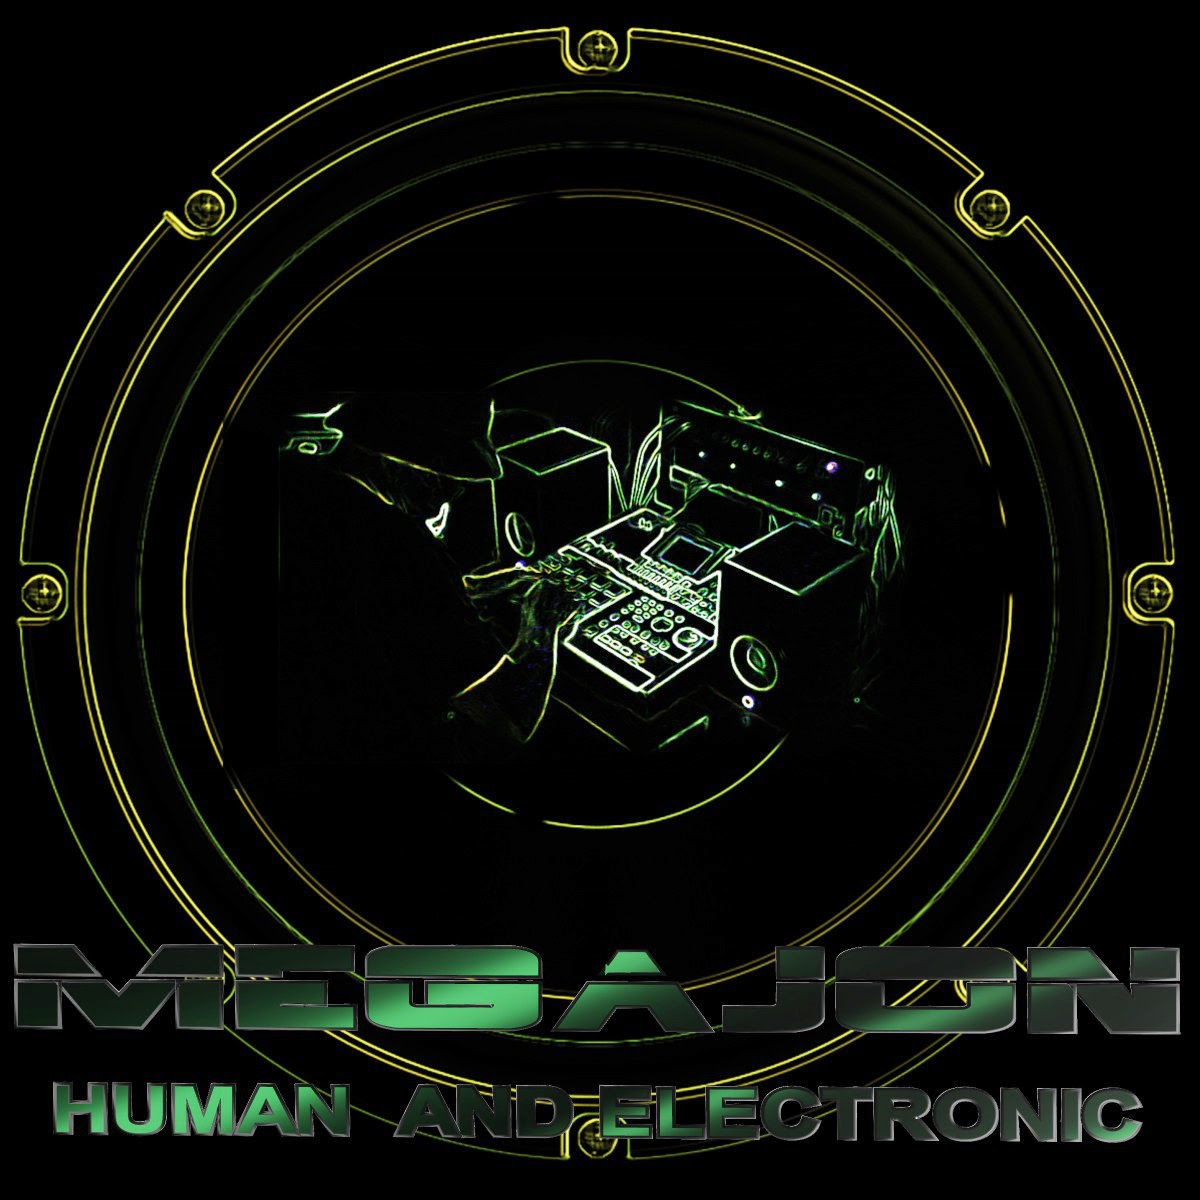 Megajon Bass - Human And Electronic (2014)